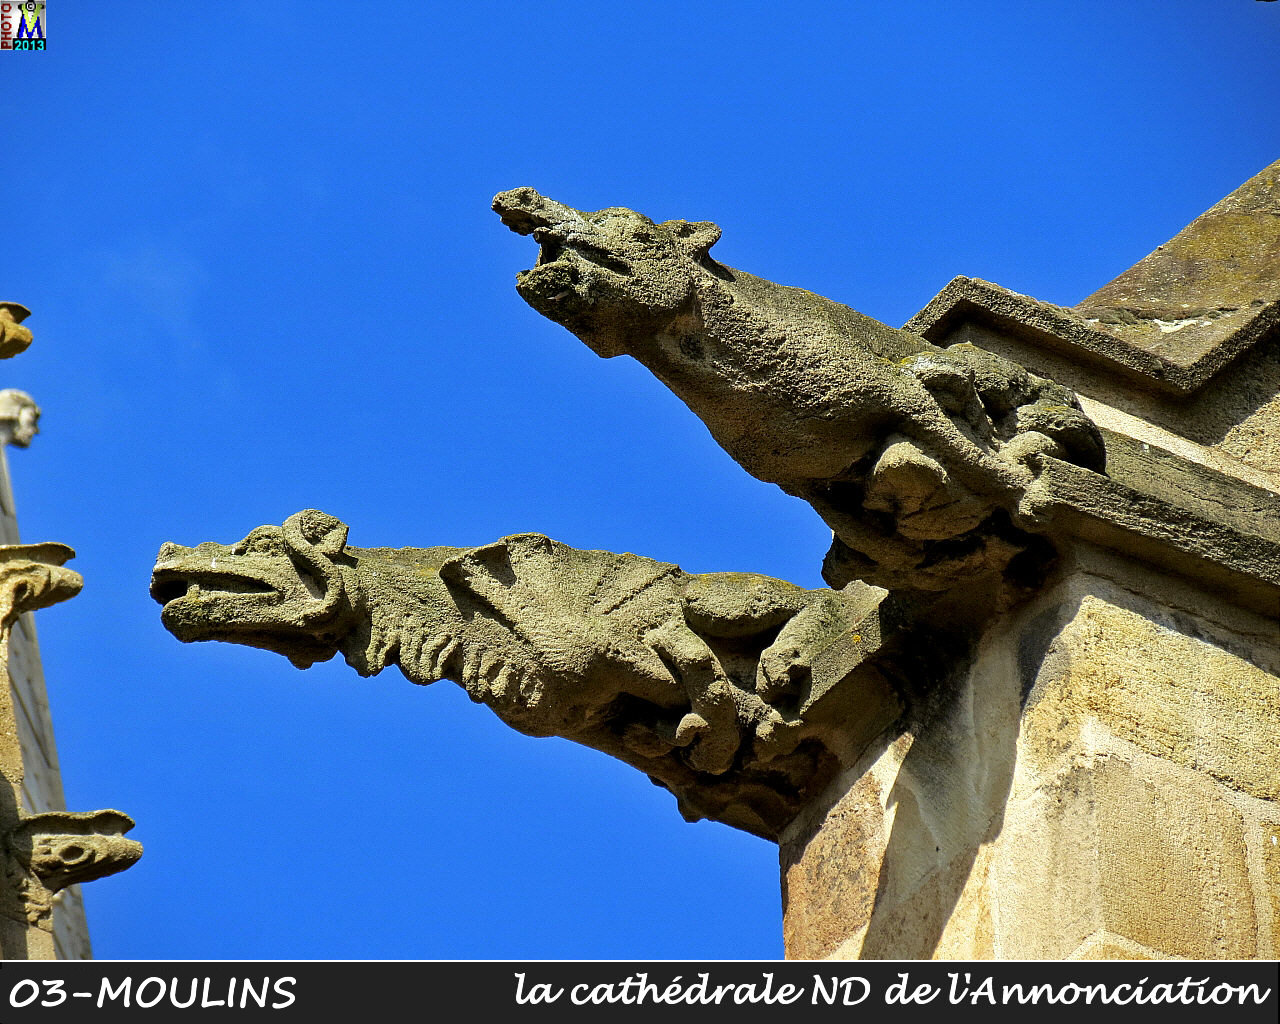 03MOULINS_cathedrale_130.jpg